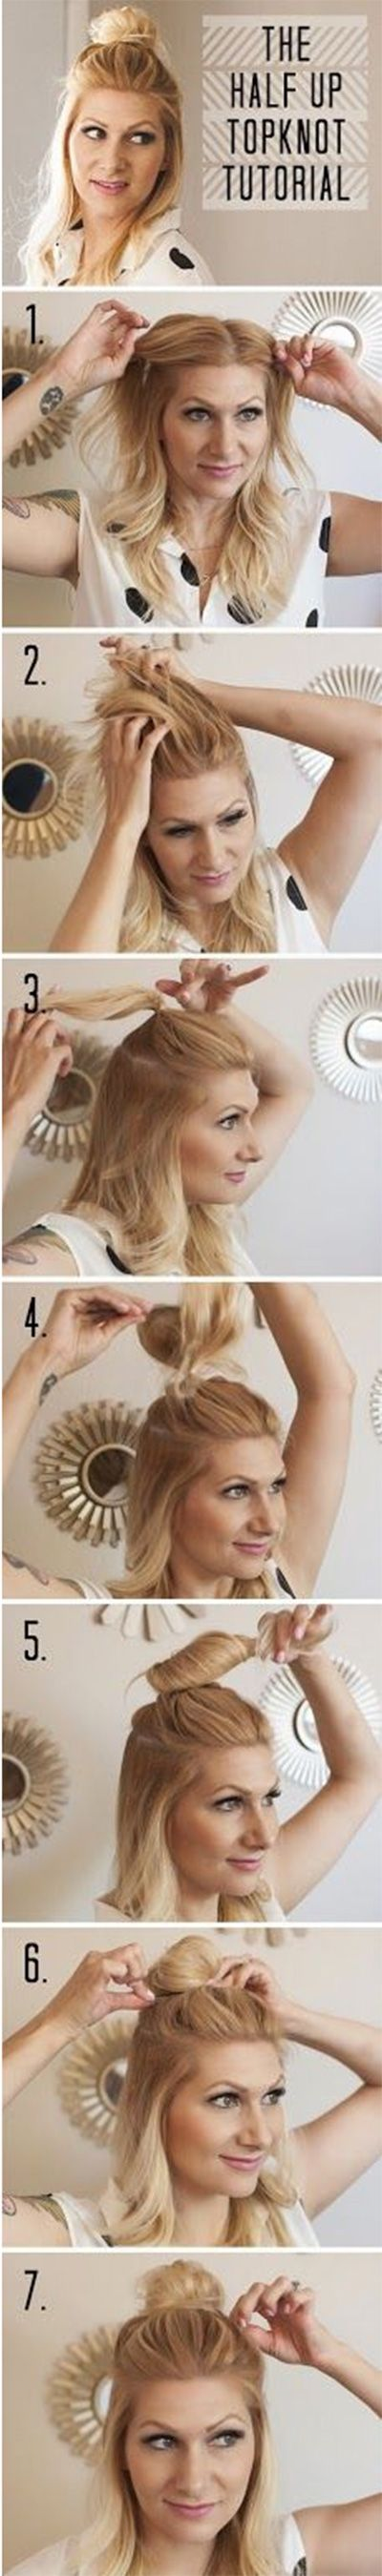 best random images on pinterest birthdays hairstyle ideas and